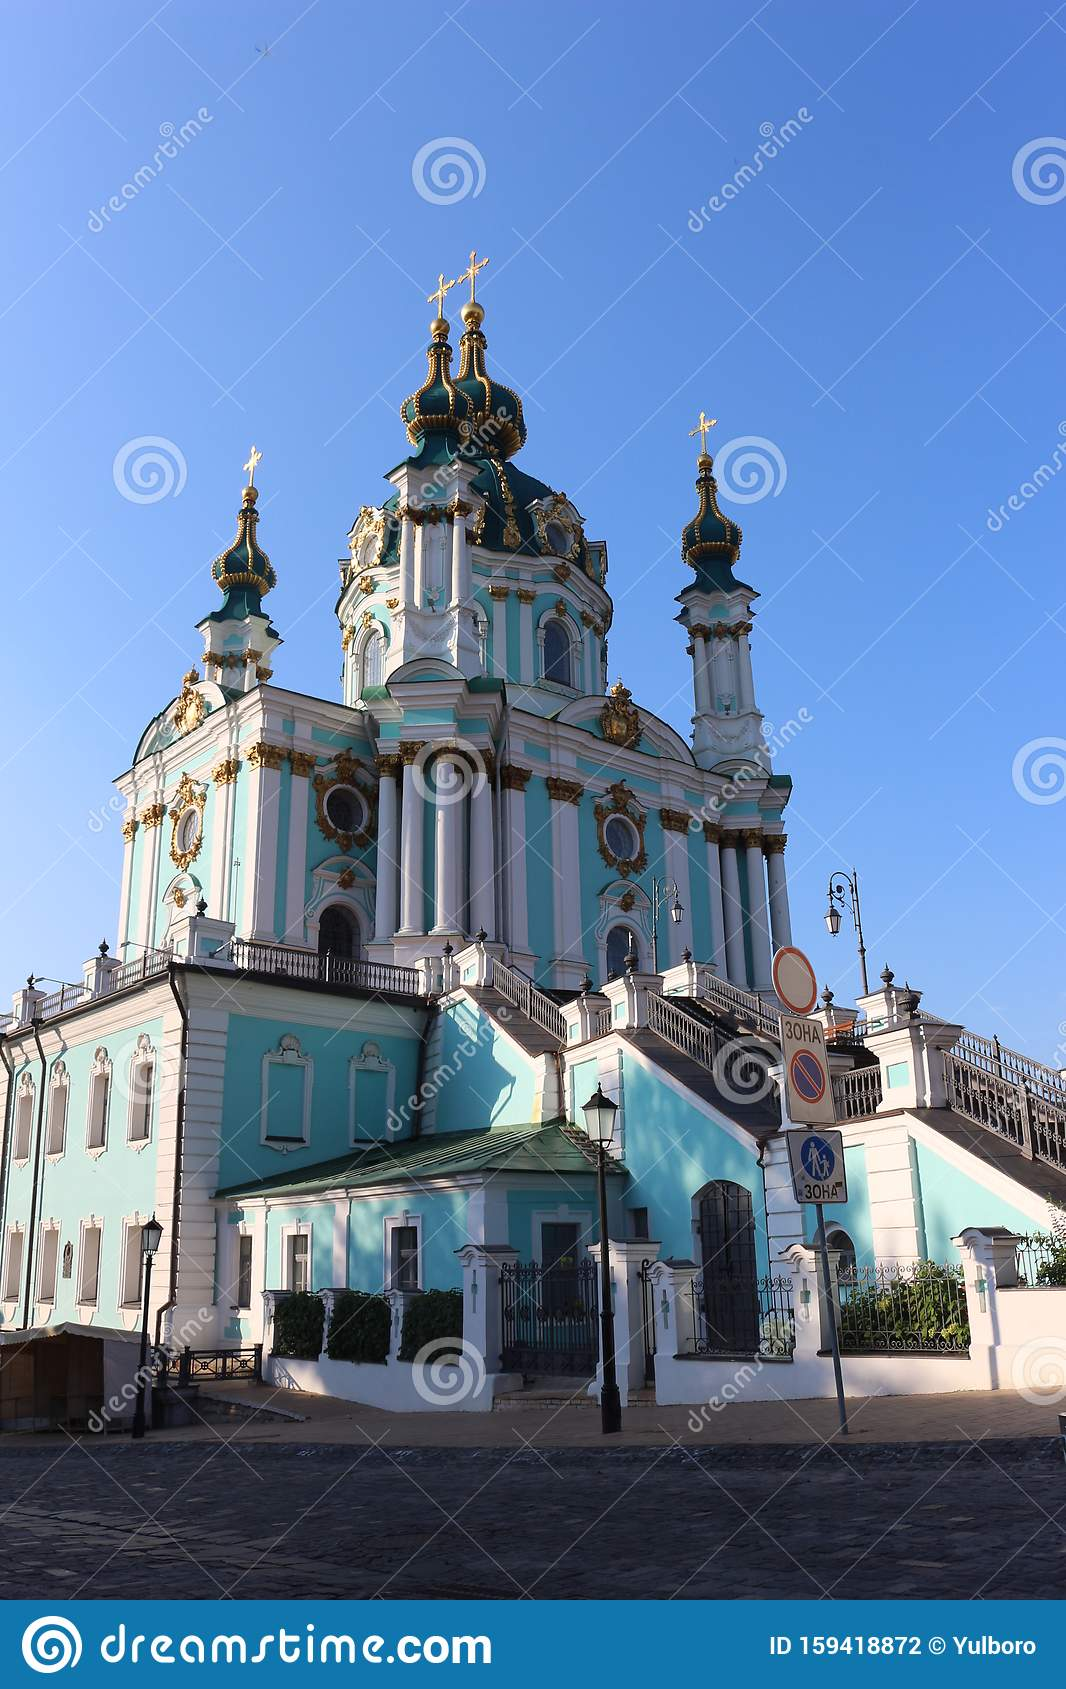 One Of The Most Beautiful Churches In Ukraine Is Located In Kiev This Is A Temple In Honor Of Andrew The Apostle Jesus Christ Stock Photo Image Of Travel Hill 159418872